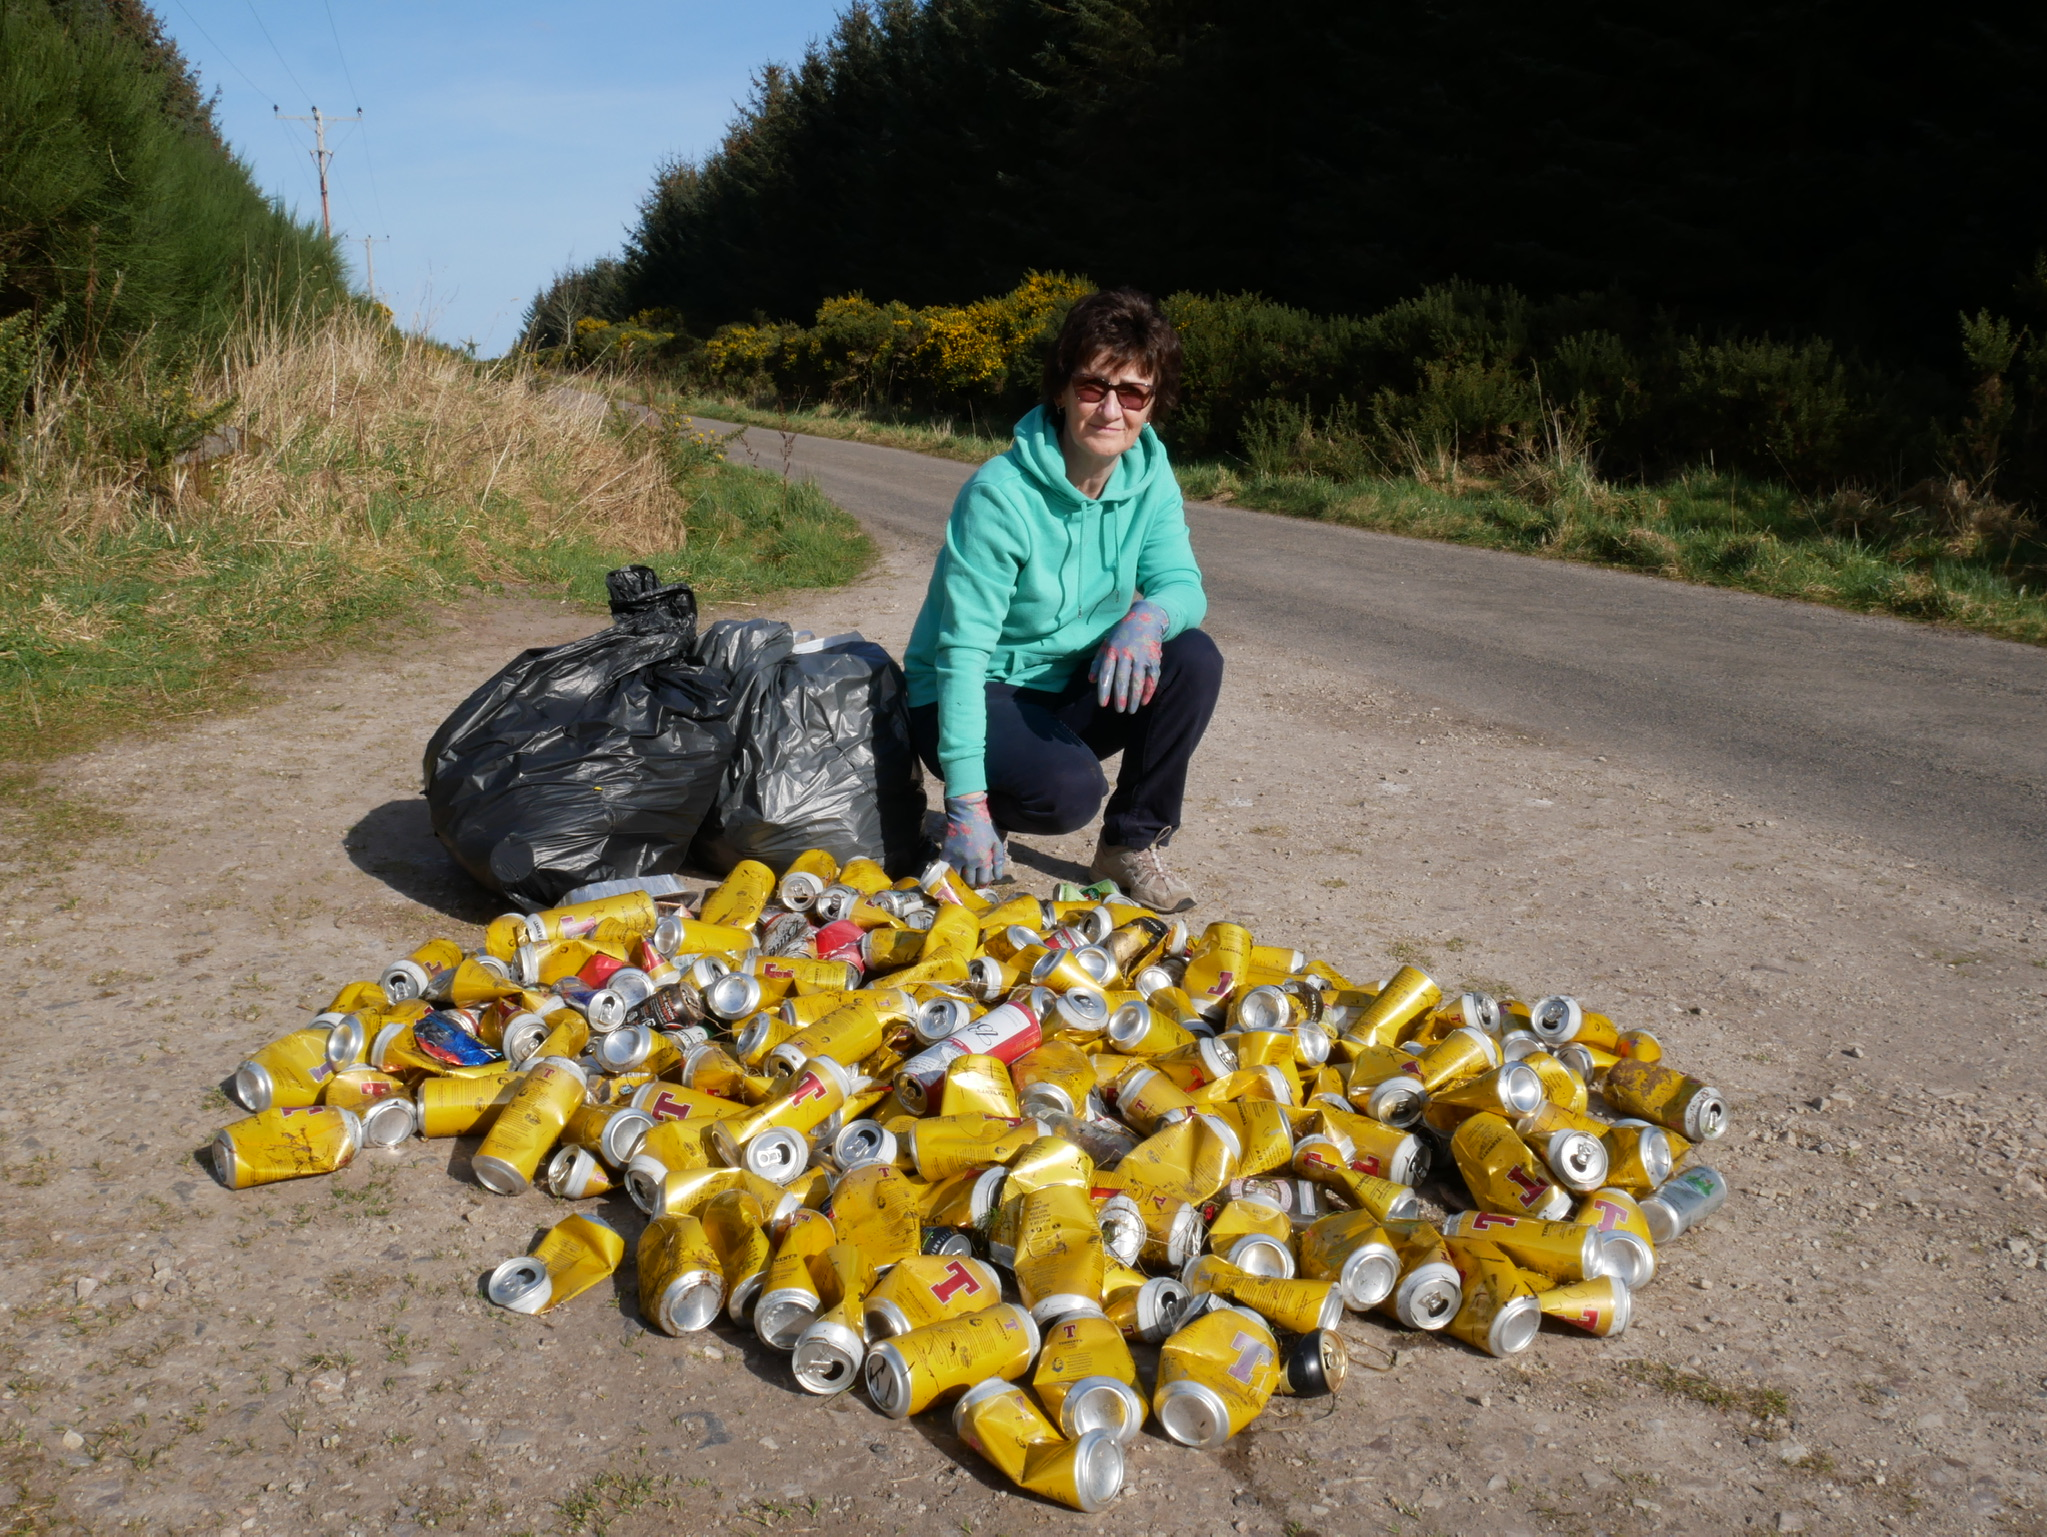 Lorna Sinclair was disappointed to discover this rubbish while out on walk.